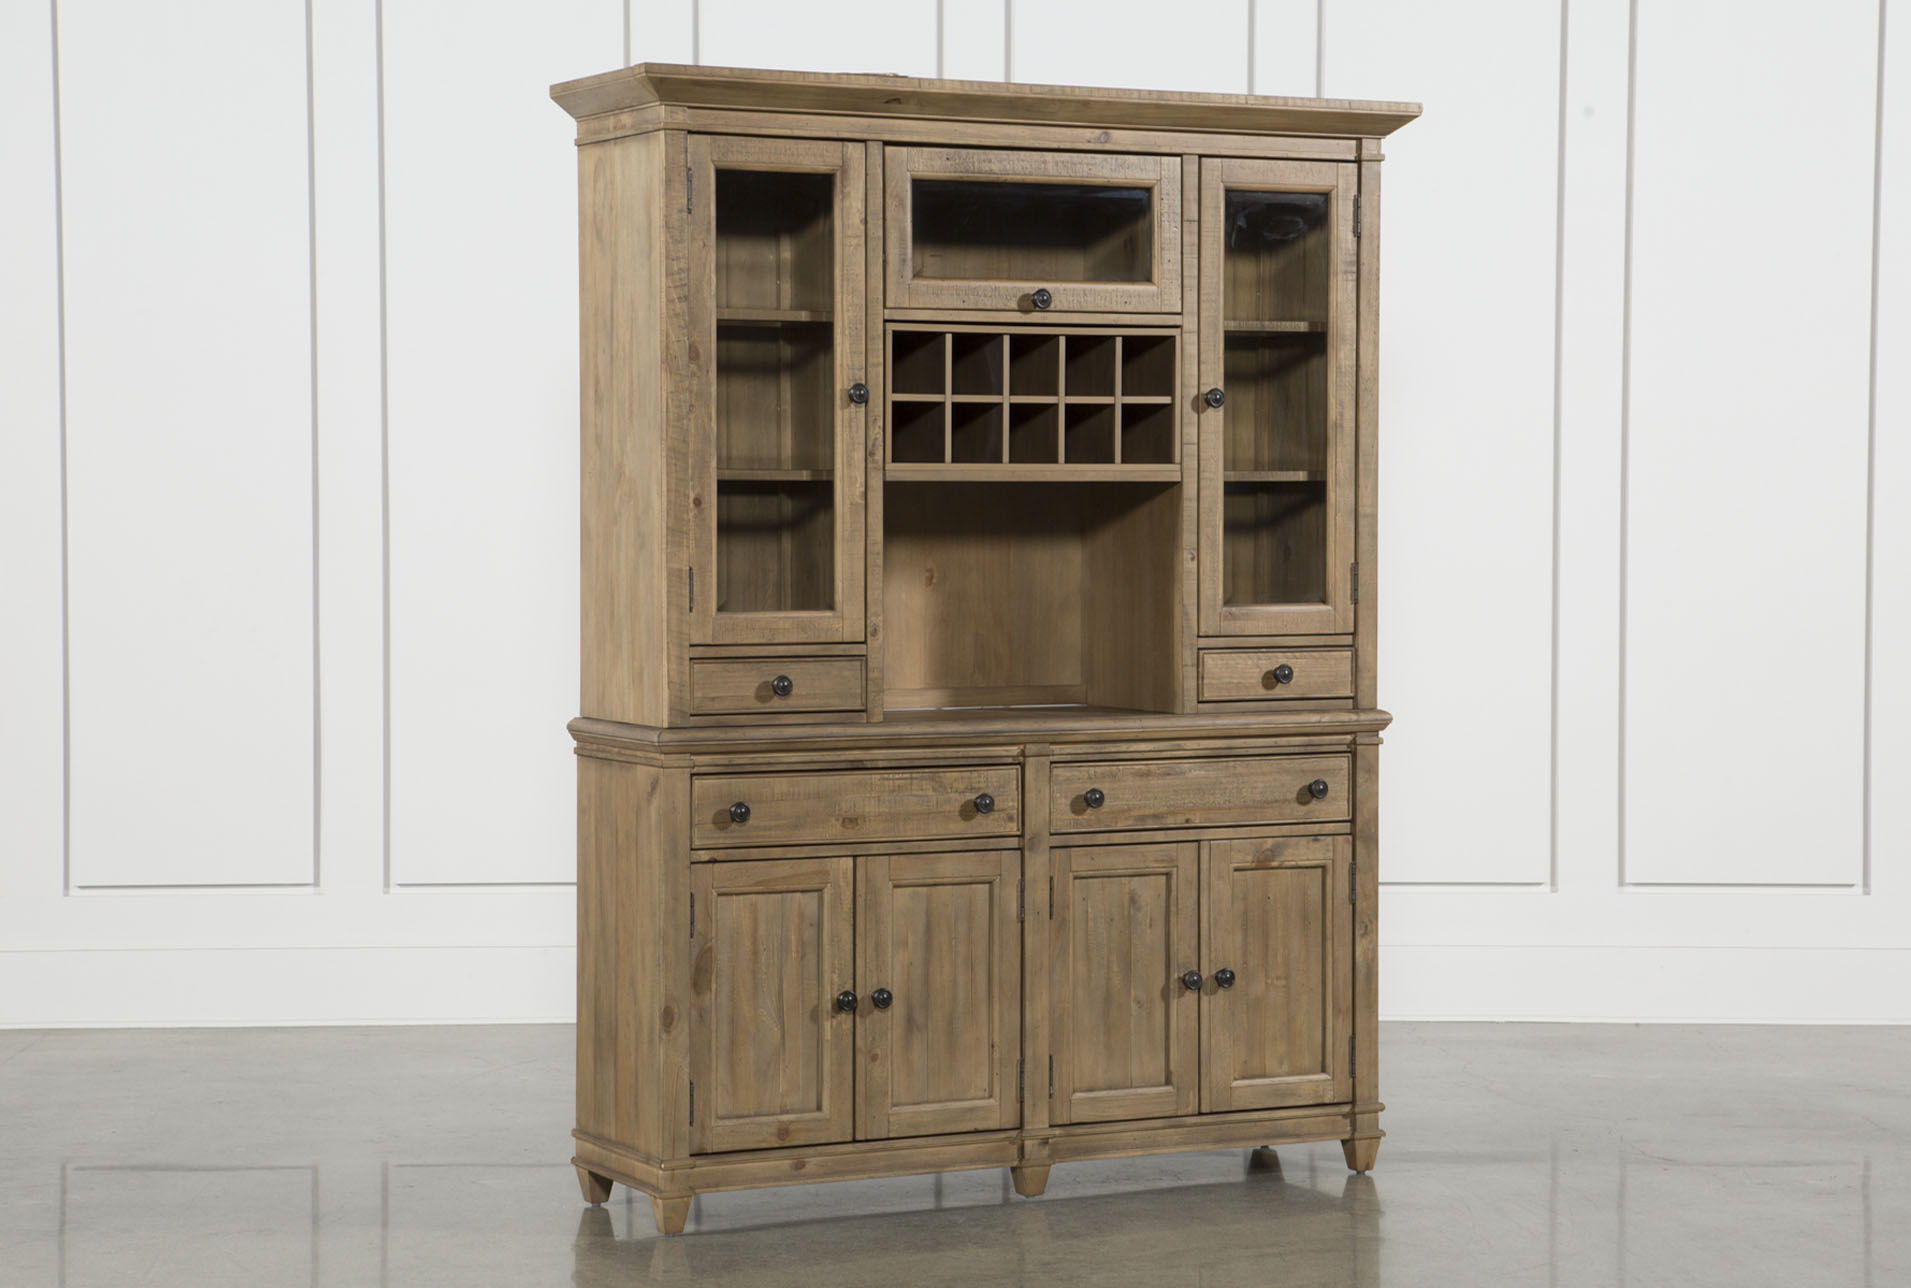 Market Buffet/Hutch (Qty: 1) Has Been Successfully Added To Your Cart.